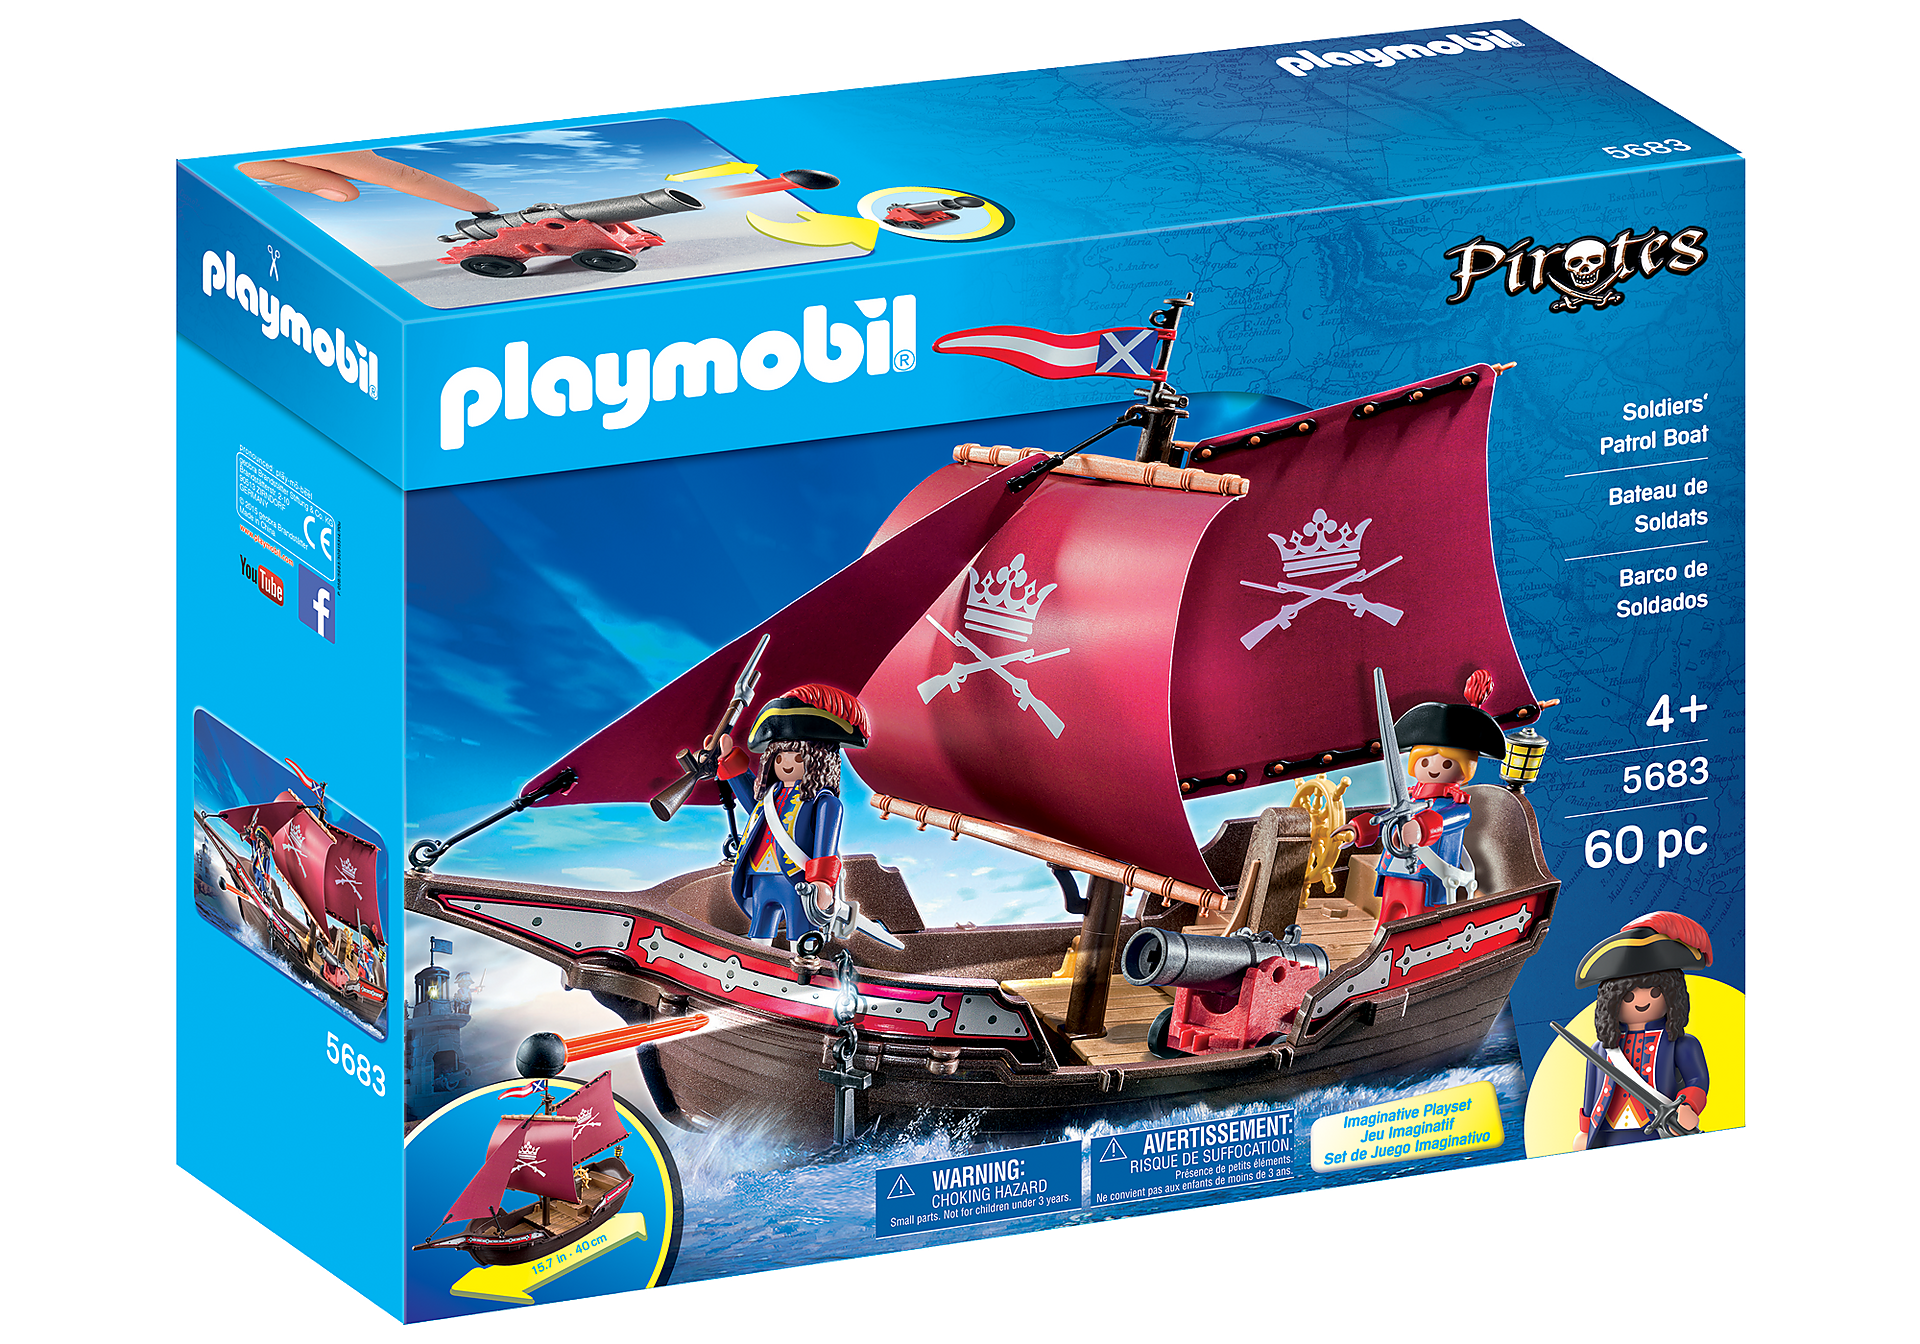 http://media.playmobil.com/i/playmobil/5683_product_box_front/Soldiers' Patrol Boat